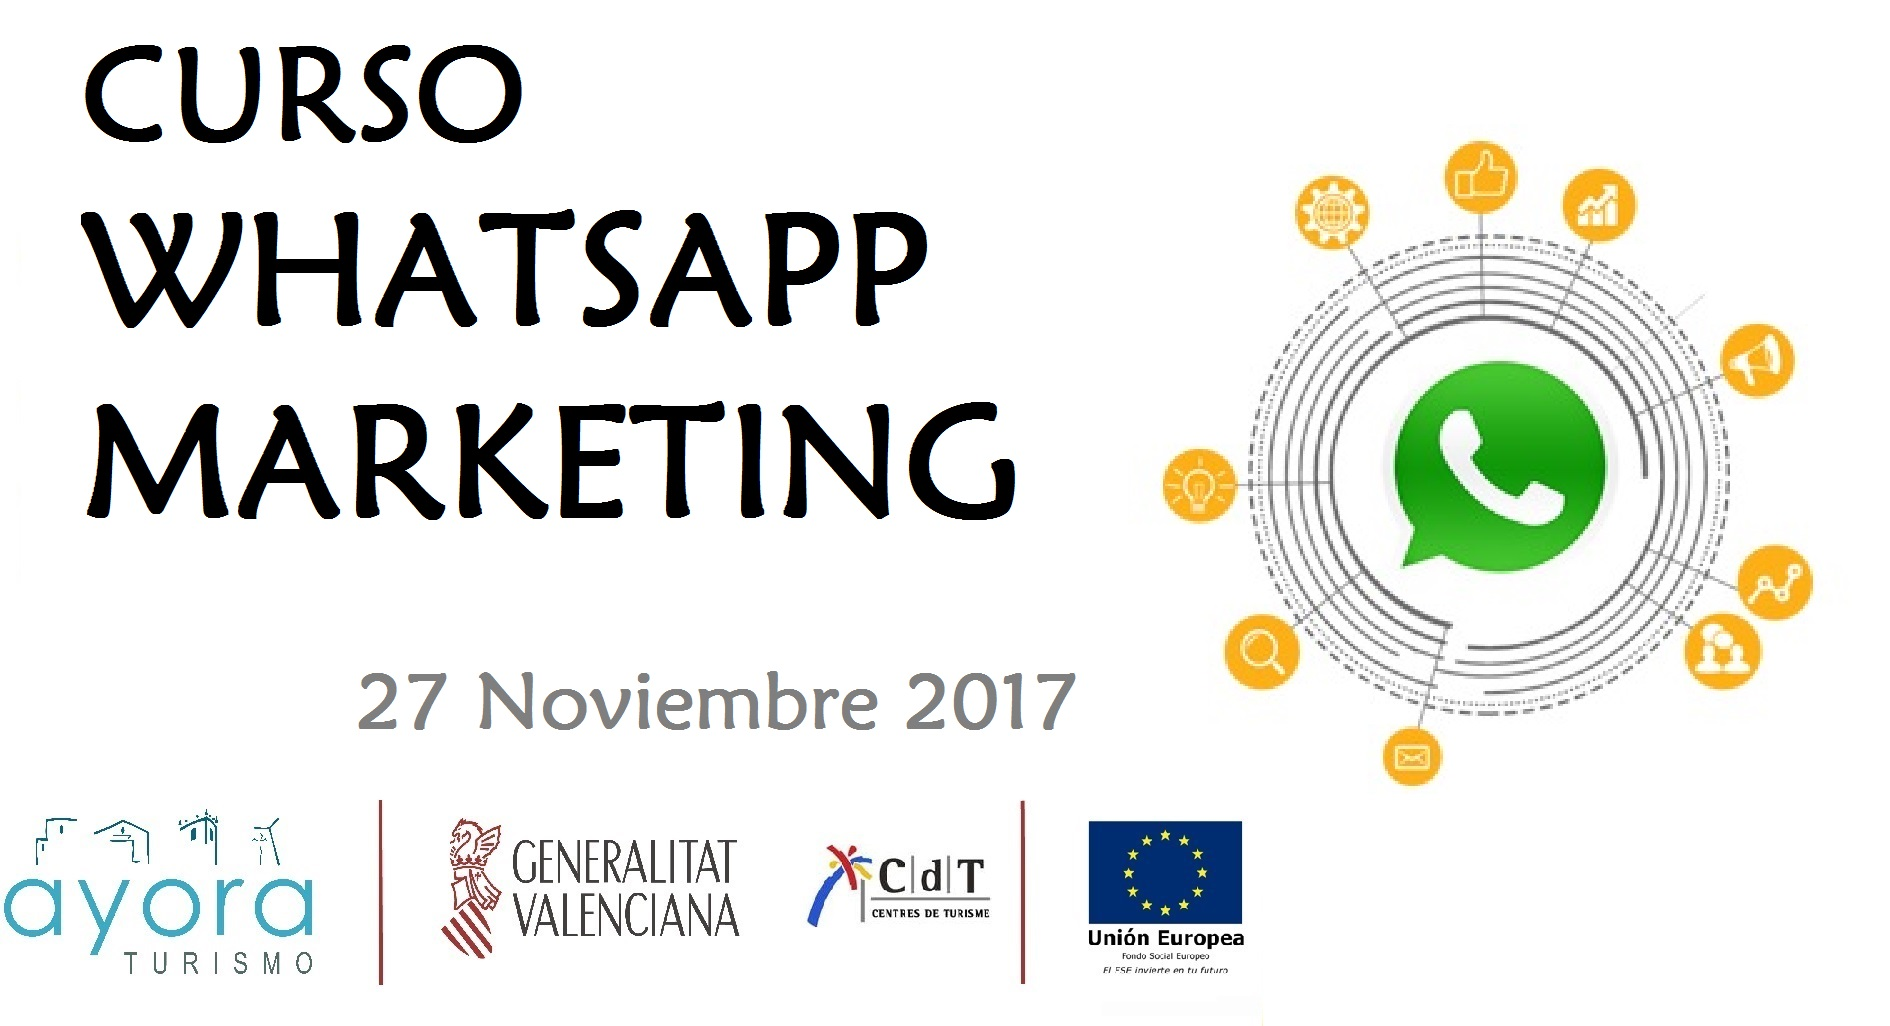 cdt_curso_whatsapp_marketing